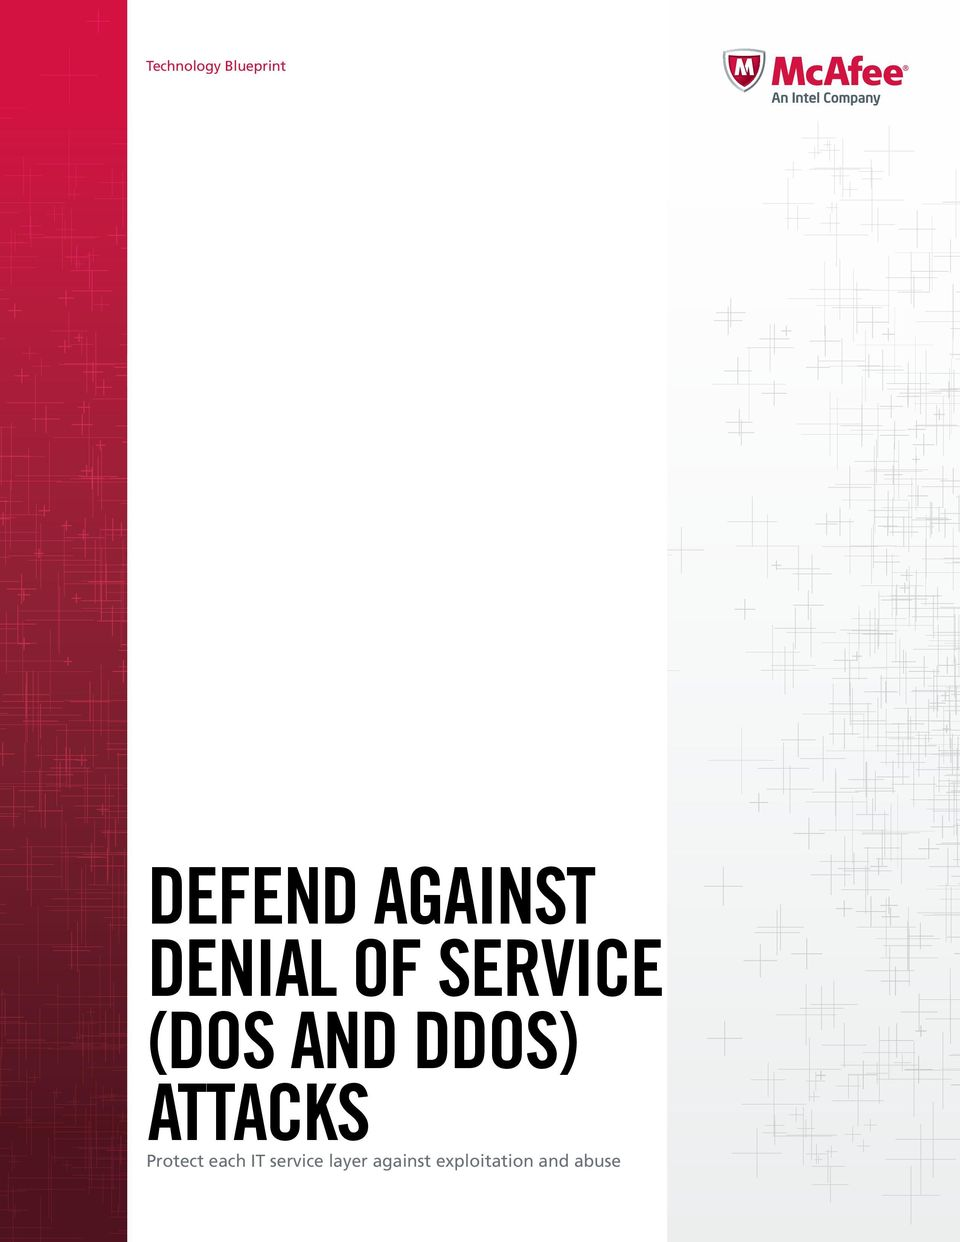 DDOS) Attacks Protect each IT